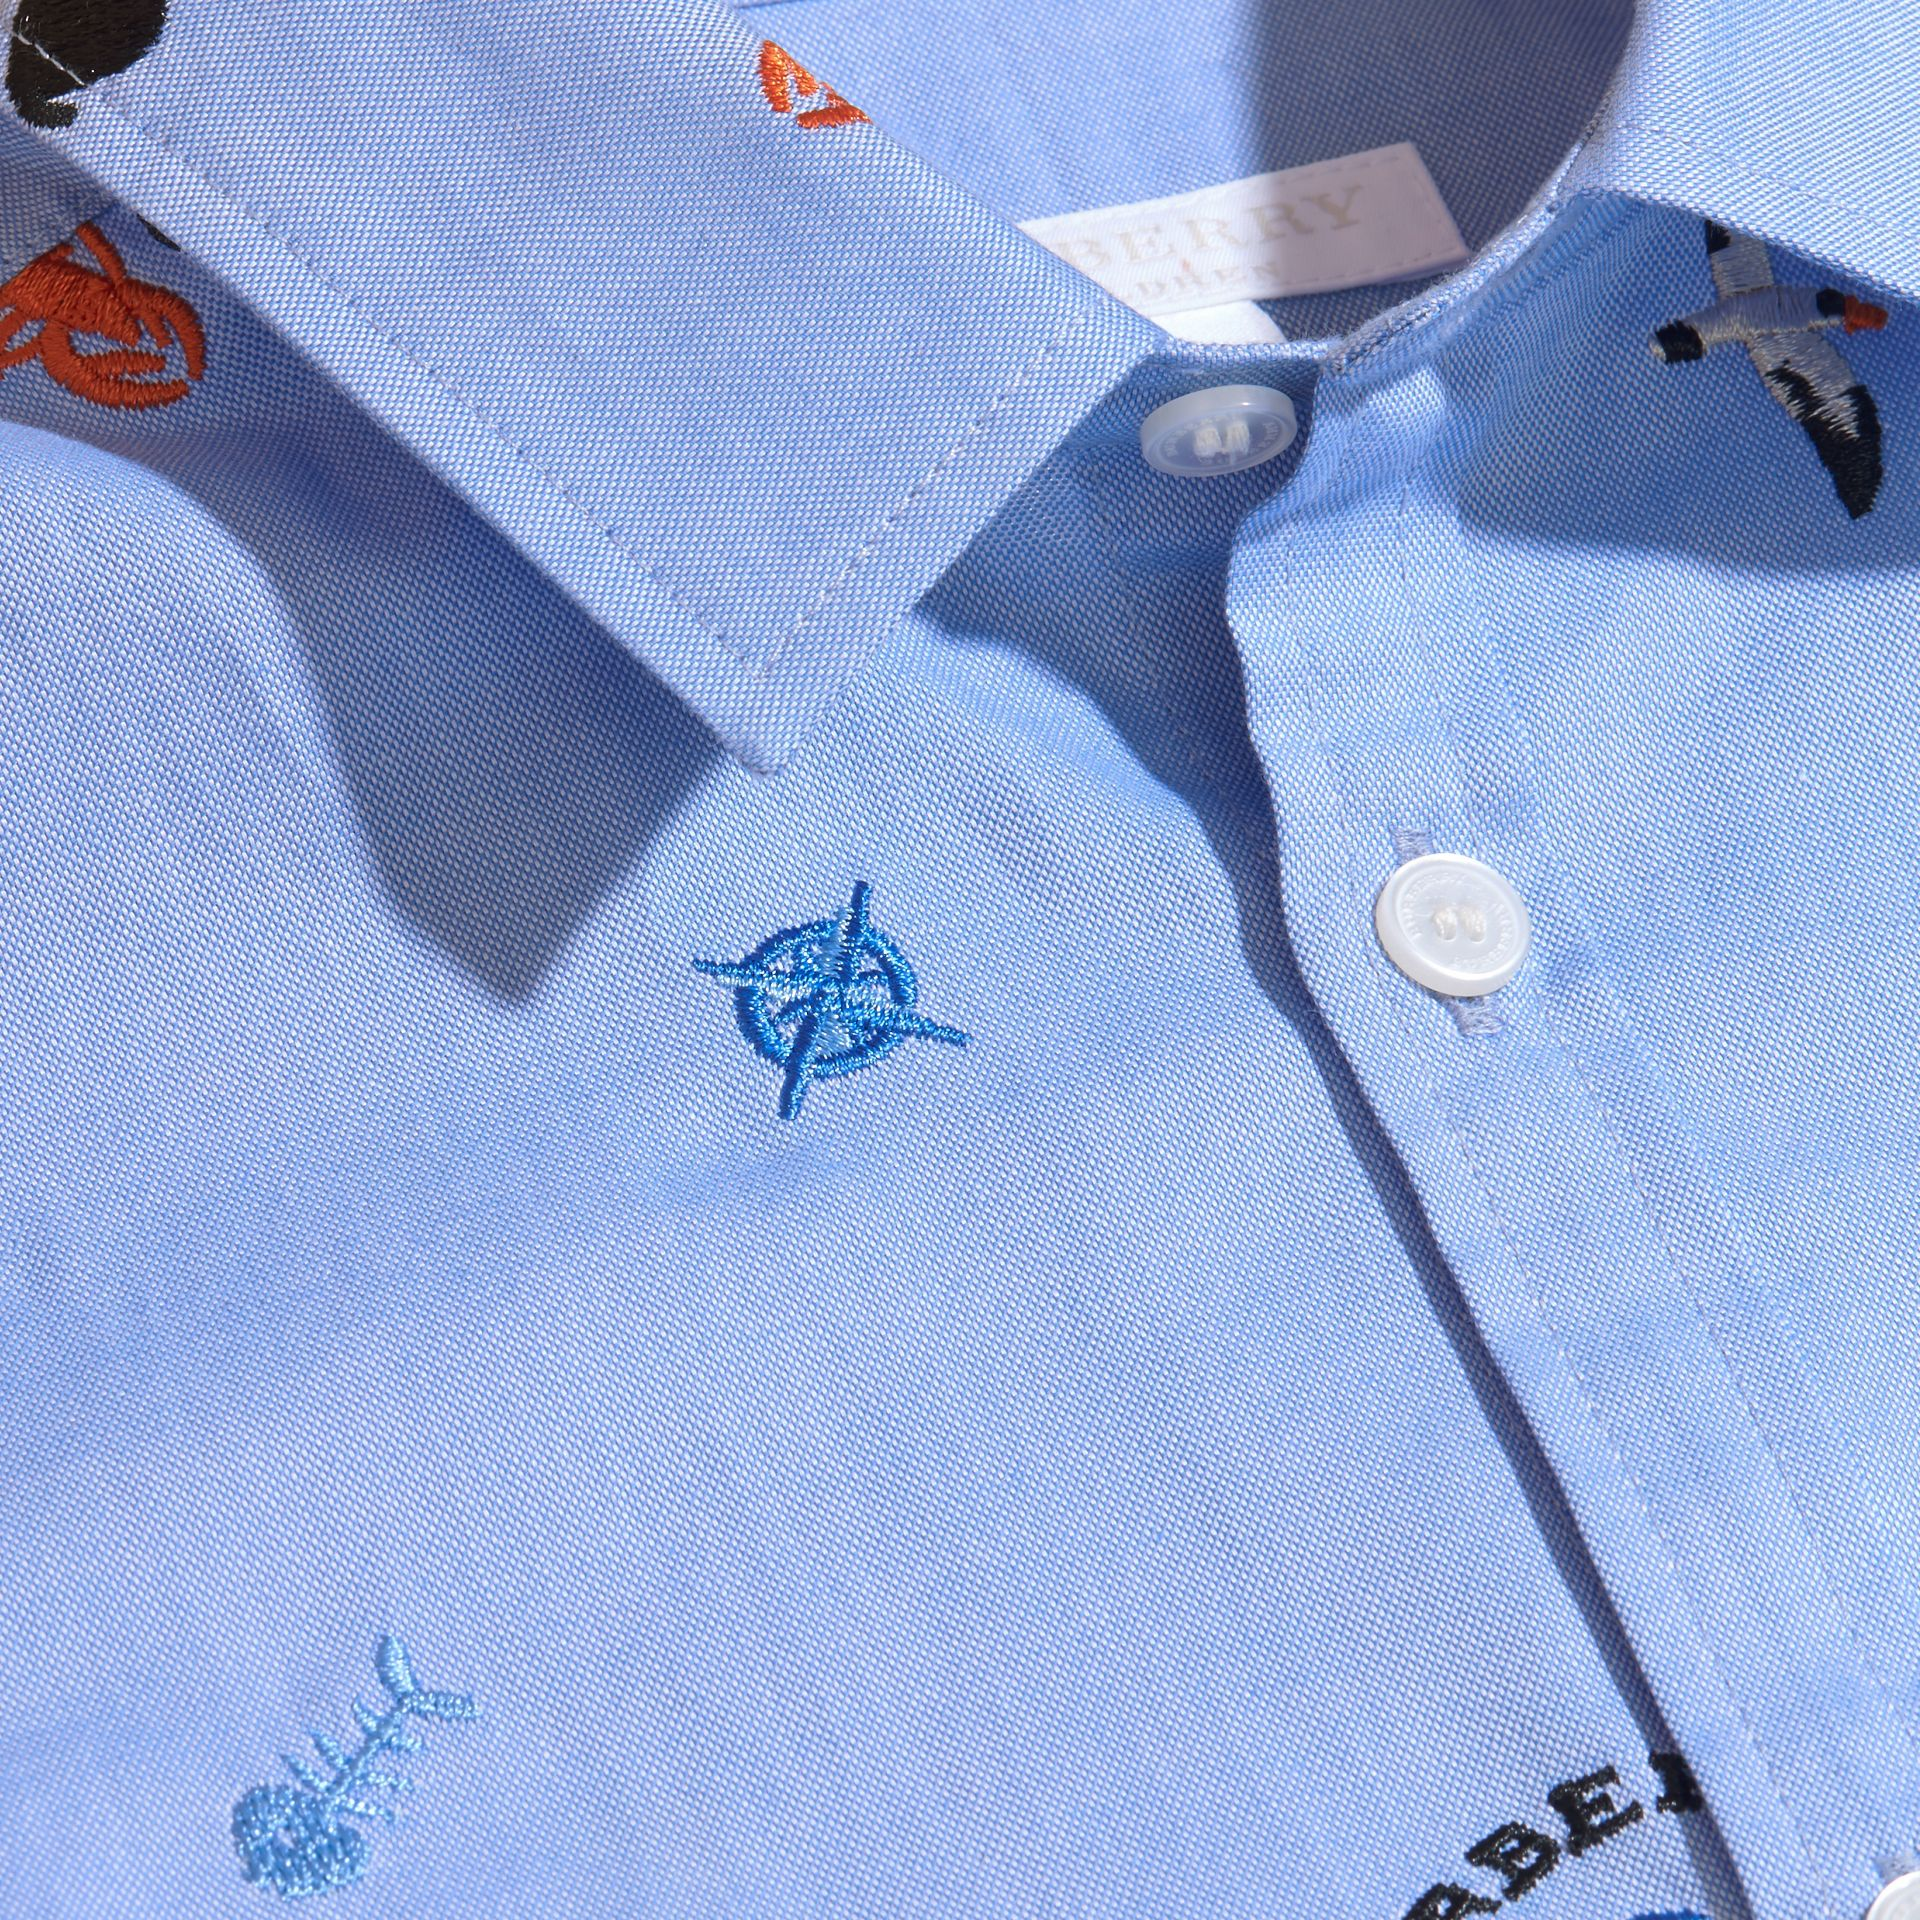 Embroidered Nautical Motif Cotton Oxford Shirt Cornflower Blue - gallery image 2